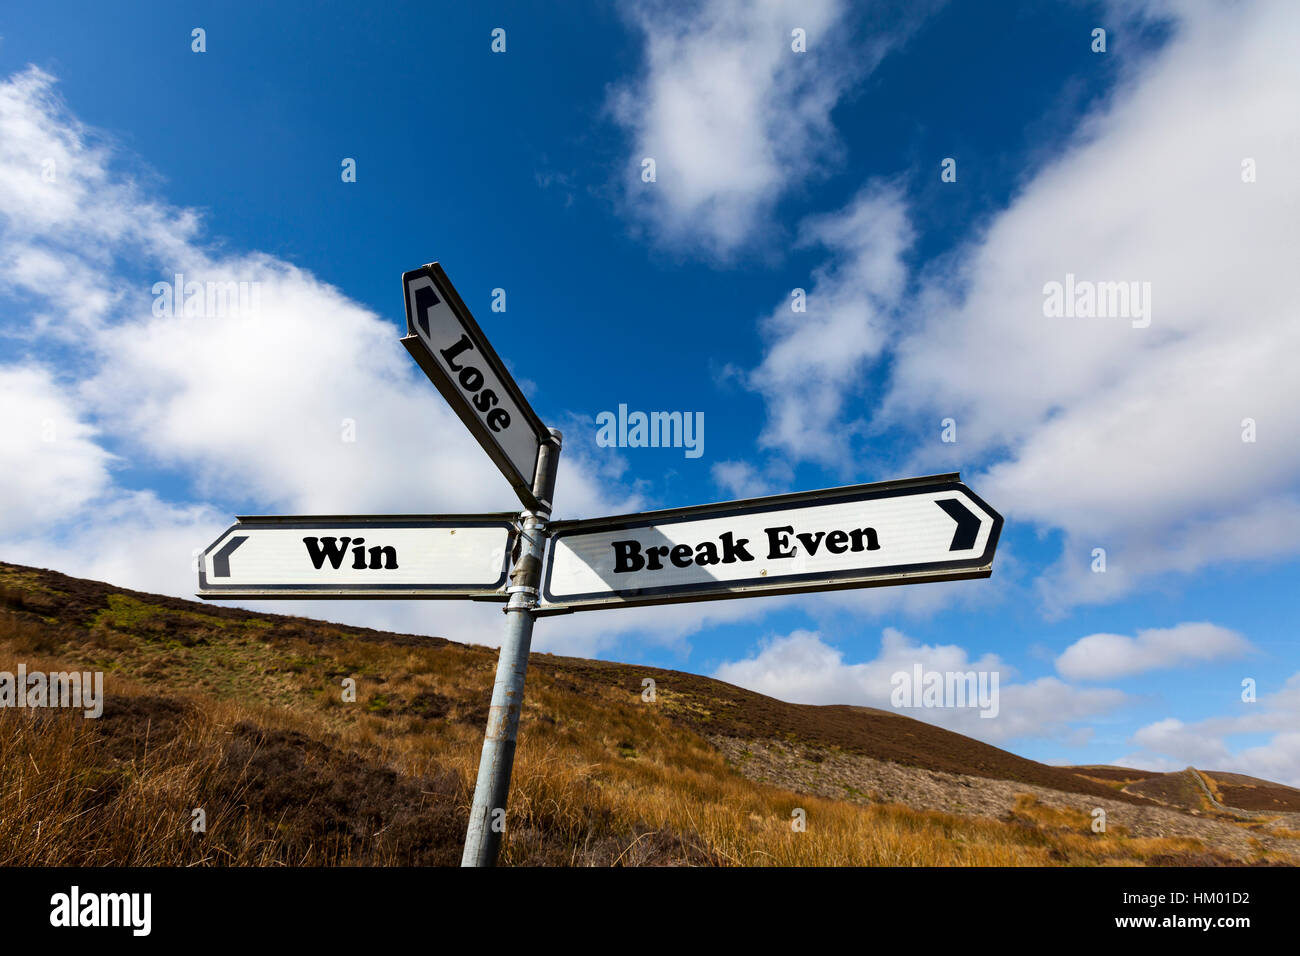 Win lose break even draw concept sign gamble gambling betting bet lifestyle choices - Stock Image